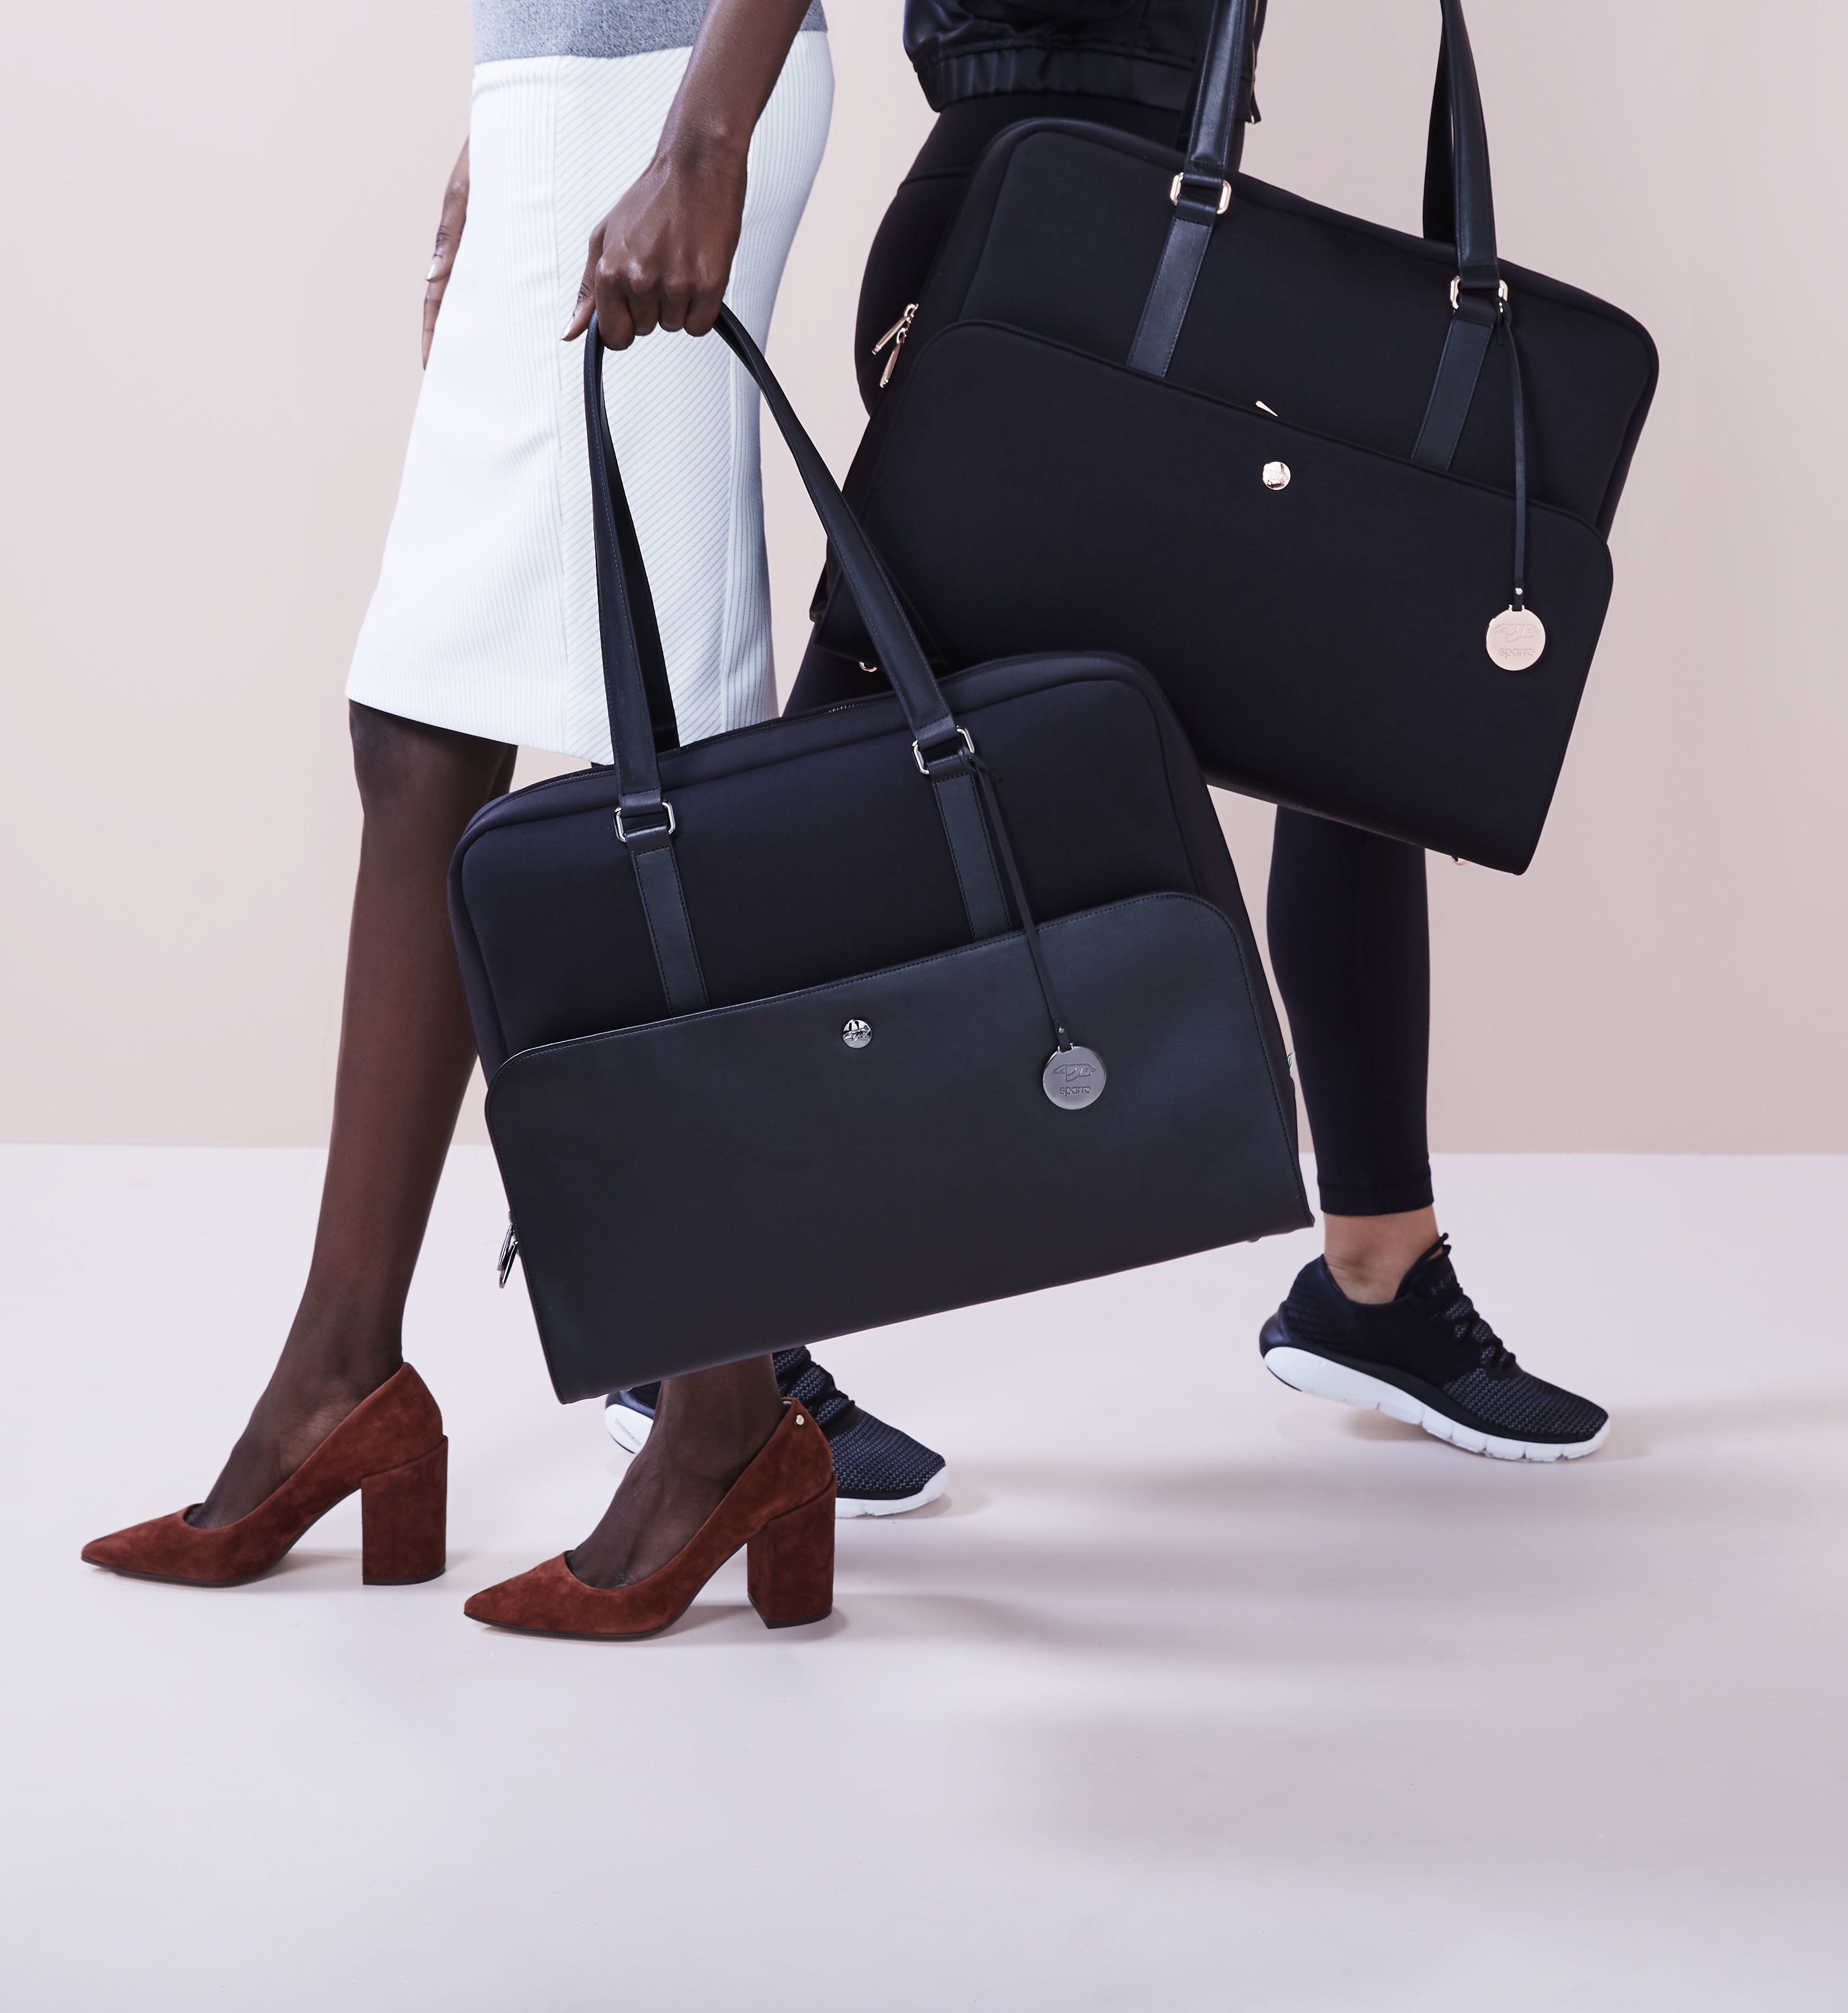 Sparro Designs Carry-All for women who work